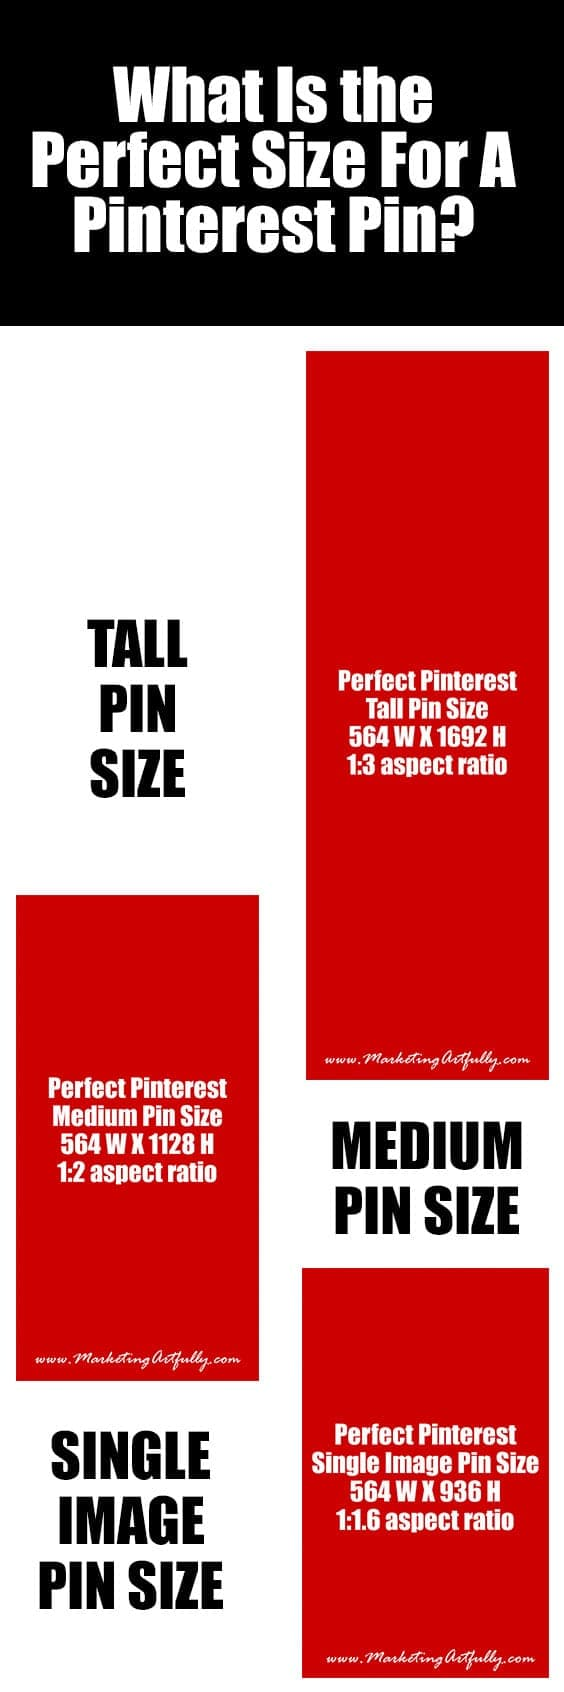 What Is The Perfect Size For A Pinterest Marketing Pin | In Pinterest Marketing Banner size matters! Today we are going to take a look at the different sizes and layouts for Pinterest pins and see what is working and how we can make our pins better.